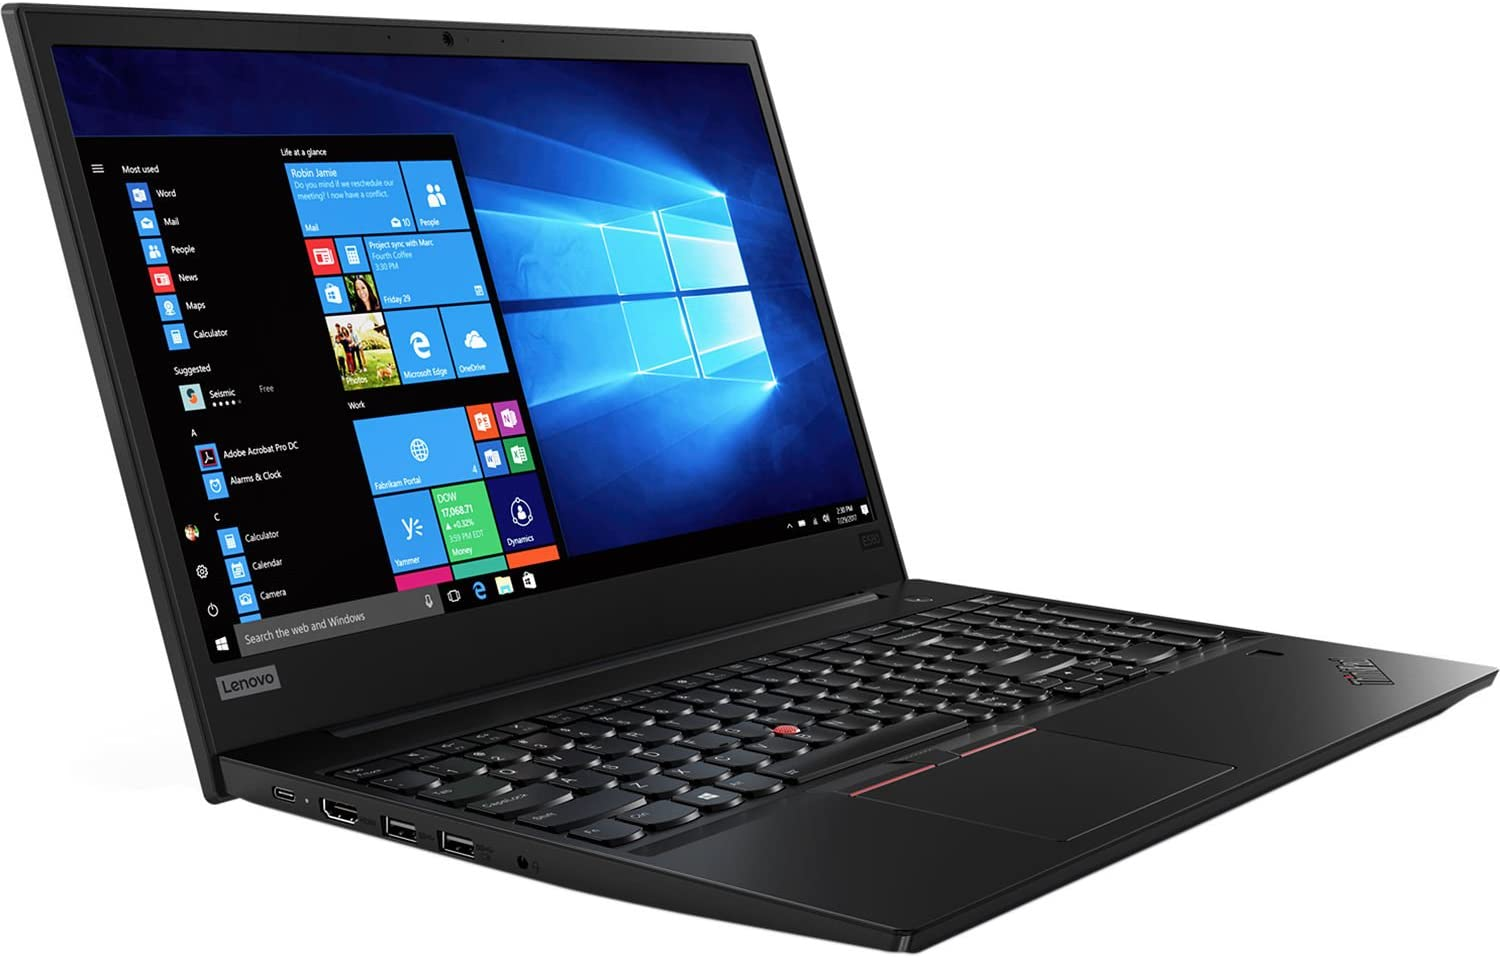 Lenovo ThinkPad E580 15.6 inch High Performance Business Laptop, Intel Core i5 7th Gen, 16GB DDR4, 512GB SSD, DVDRW, WiFi, Gigabit LAN, HDMI, USB C, Fingerprint Reader, Windows 10 Pro, Thin and Light